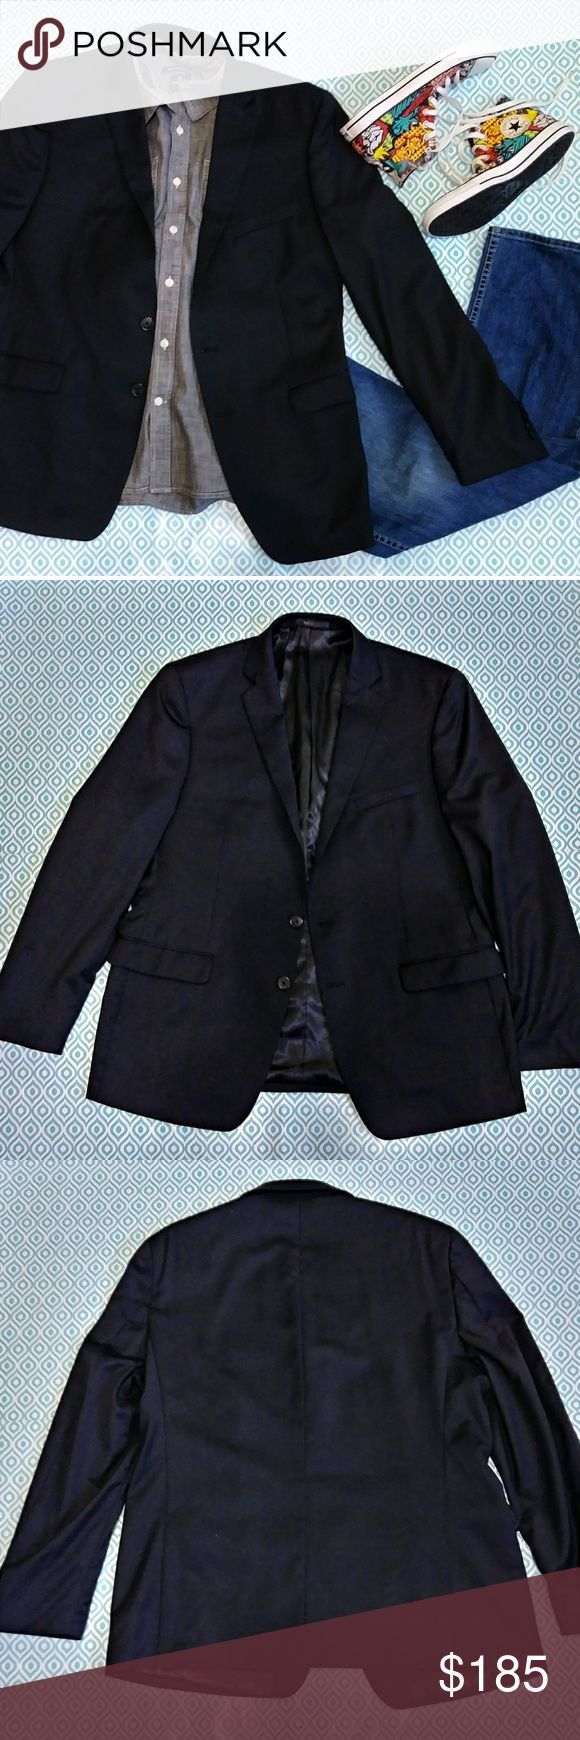 🚹NWOT CALVIN KLEIN Slim Fit Blazer NWOT. Never worn.  A closet staple EVERY man should have, a black 💯% wool blazer. Basic black makes the styling options endless. Make it part of your career wardrobe. Pair with slacks for a formal/business event or dress it down with your favorite jeans for a night on the town.  Proper care will ensure many years of good use.Dry clean only & store in a hanging bag with cedar to guard against hungry moths.   No flaws detected.  Questions & reasonable…